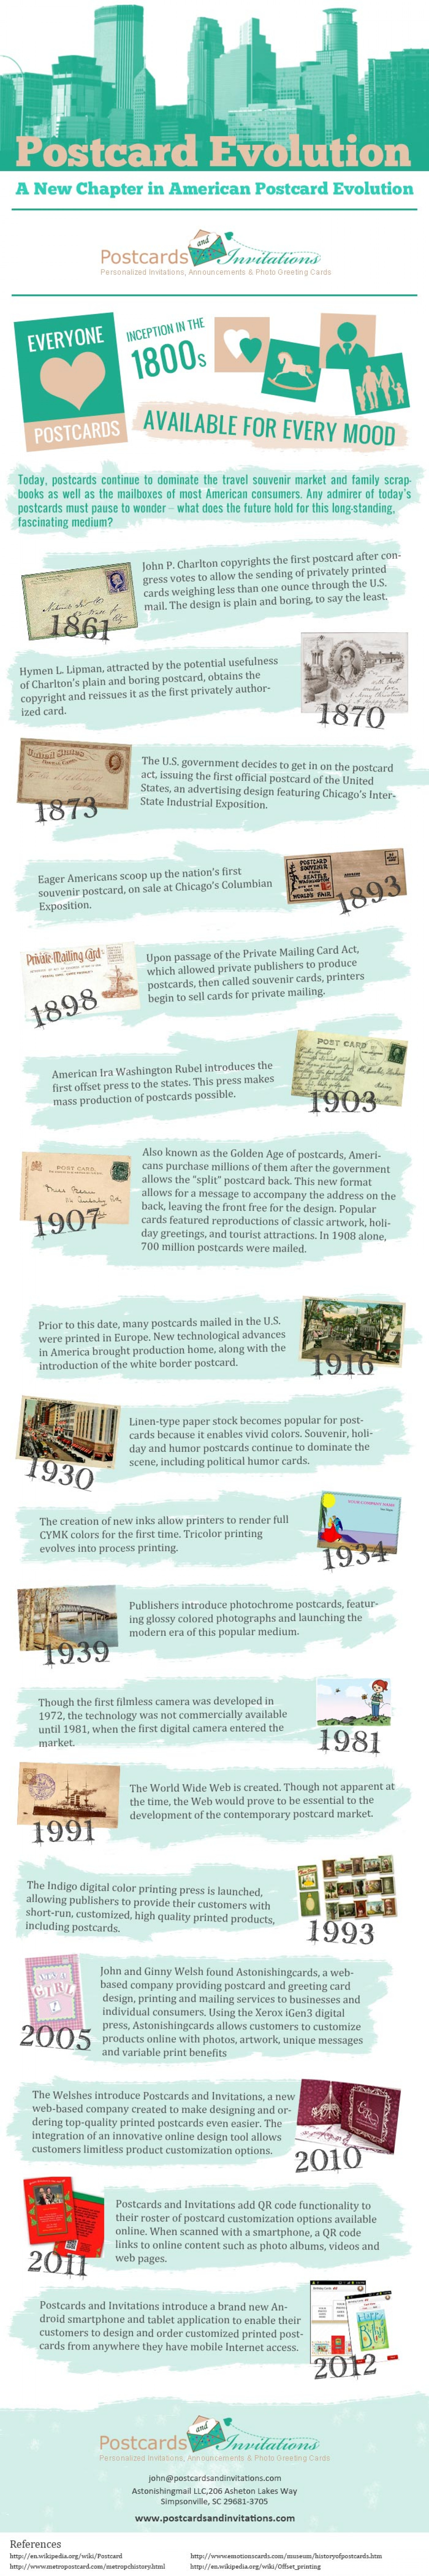 Postcard Evolution Infographic